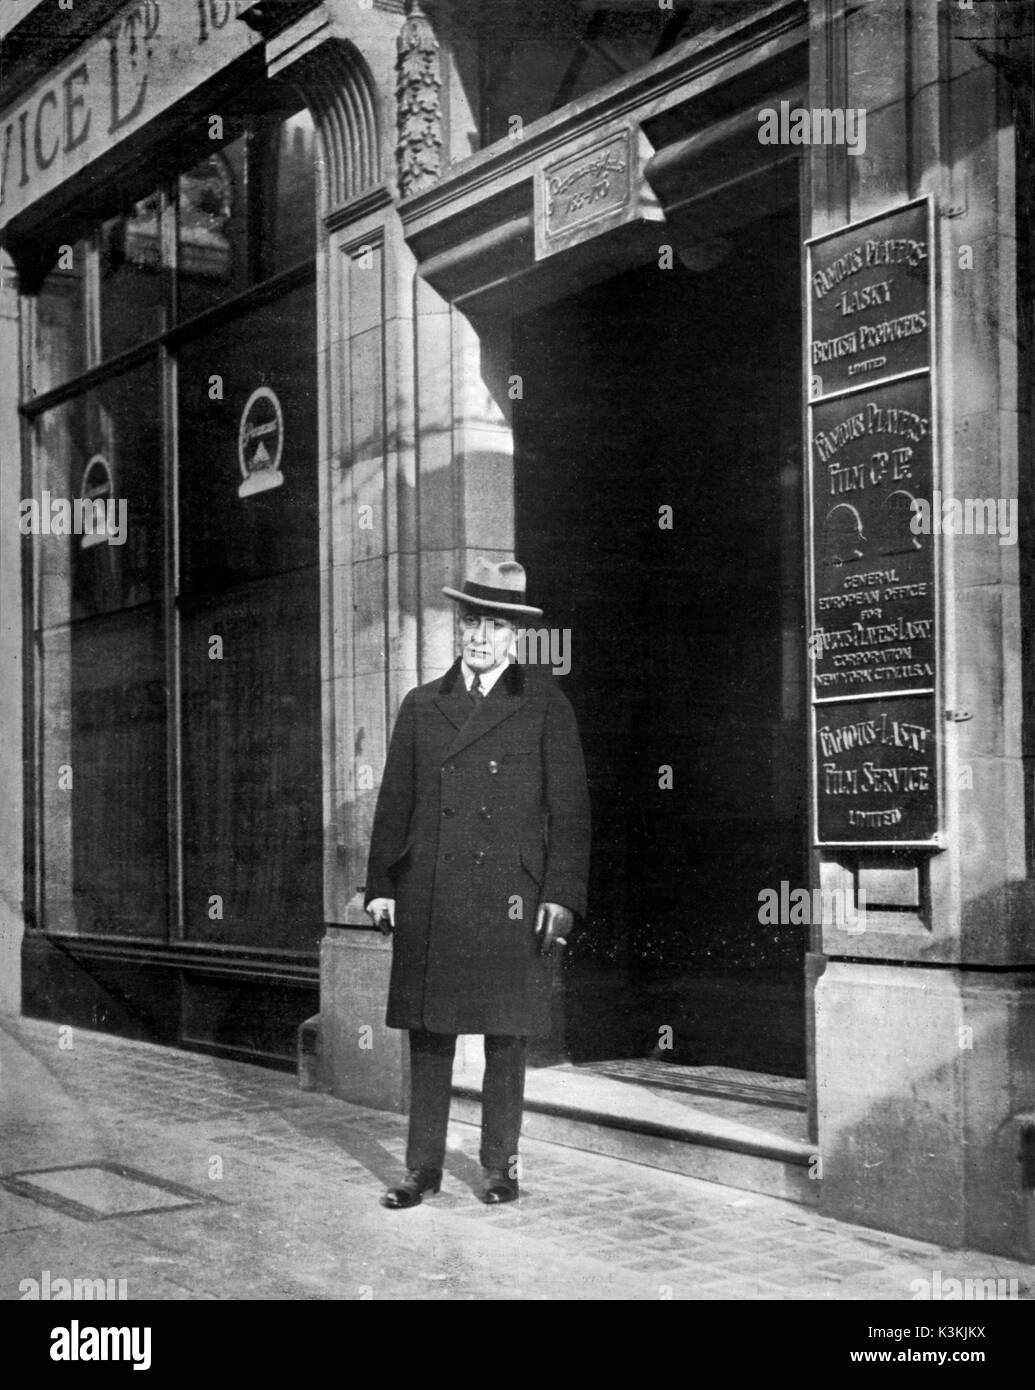 ADOLPH ZUKOR President of The Famous Players-Lasky Corporation outside Paramount House 166-170 Wardour Street, London . The nameplates from the top are for - Famous Players-Lasky British Producers Ltd, Famous Players Film Co Ltd General European Office for Famous Players-Lasky Corporation New York City USA, Famous-Lasky Film Service Ltd - Stock Image